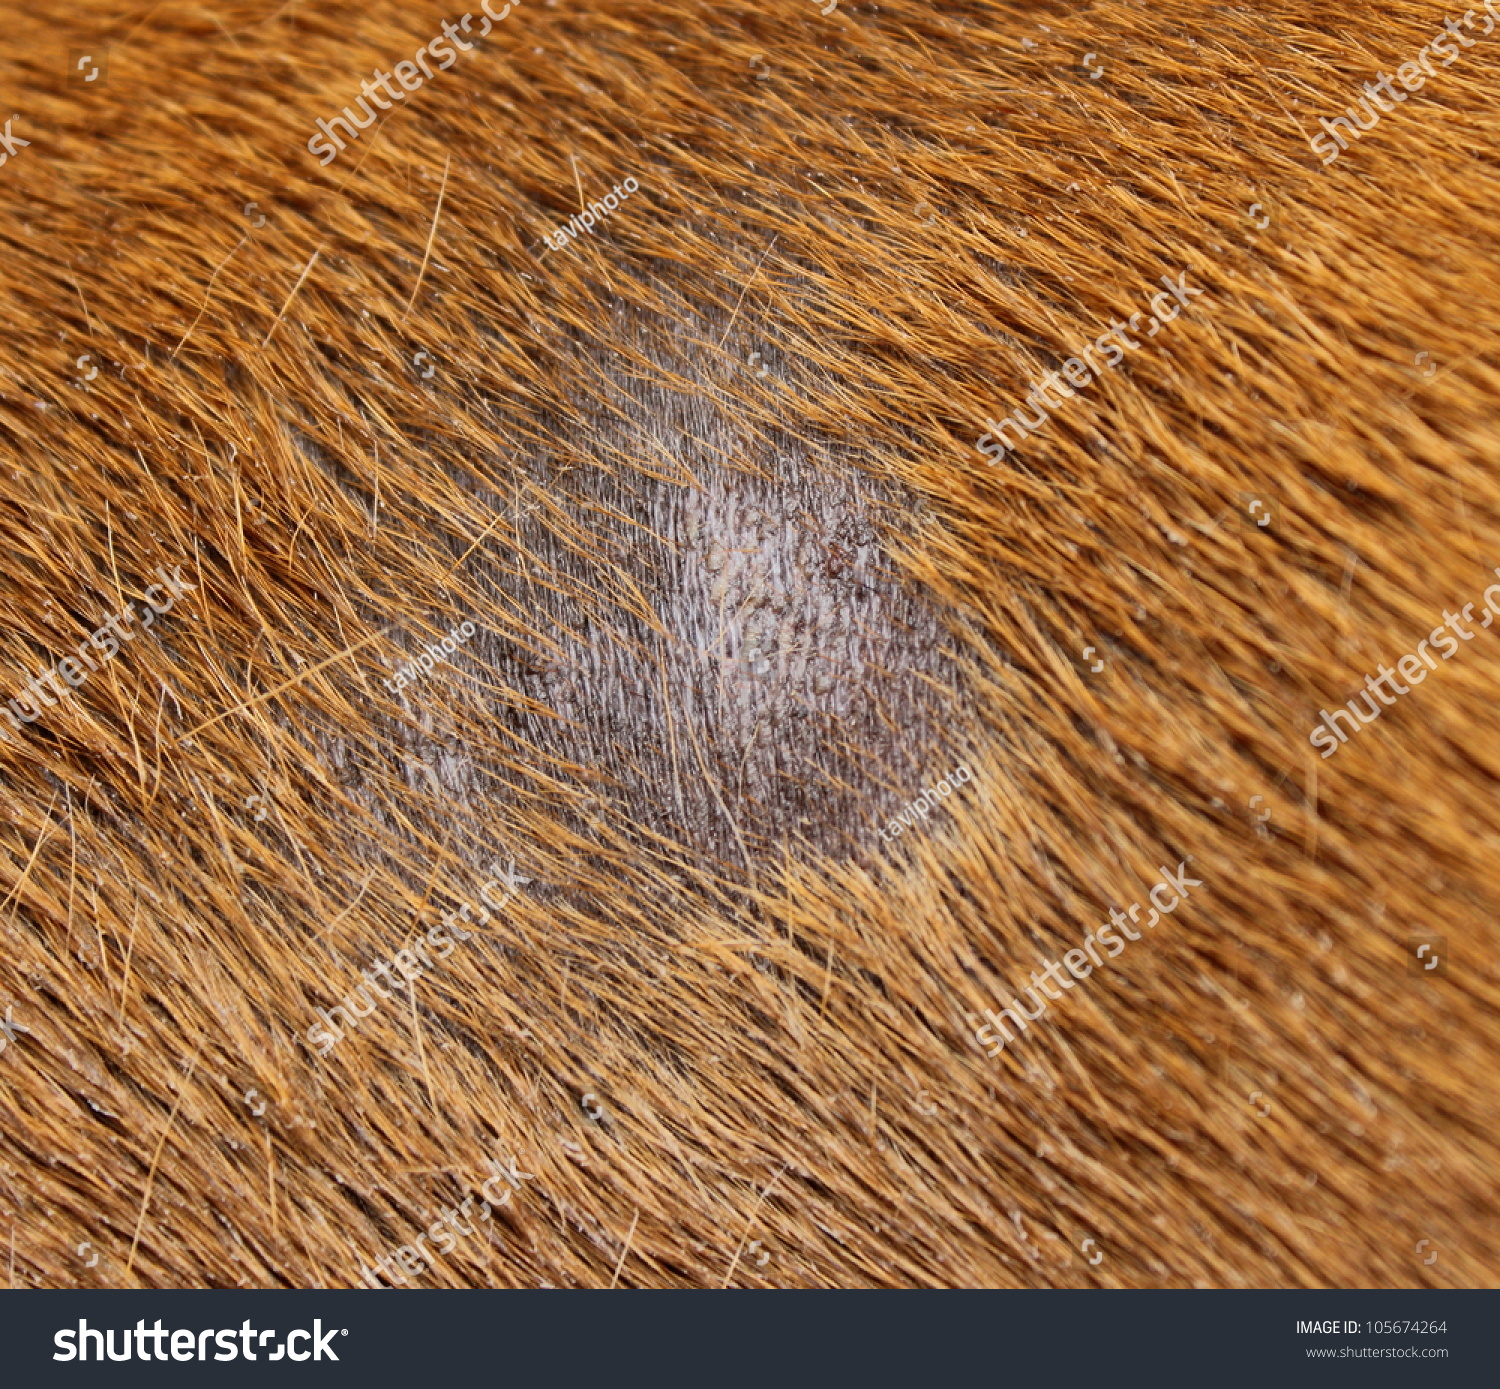 What are some symptoms of a staph skin infection in dogs?